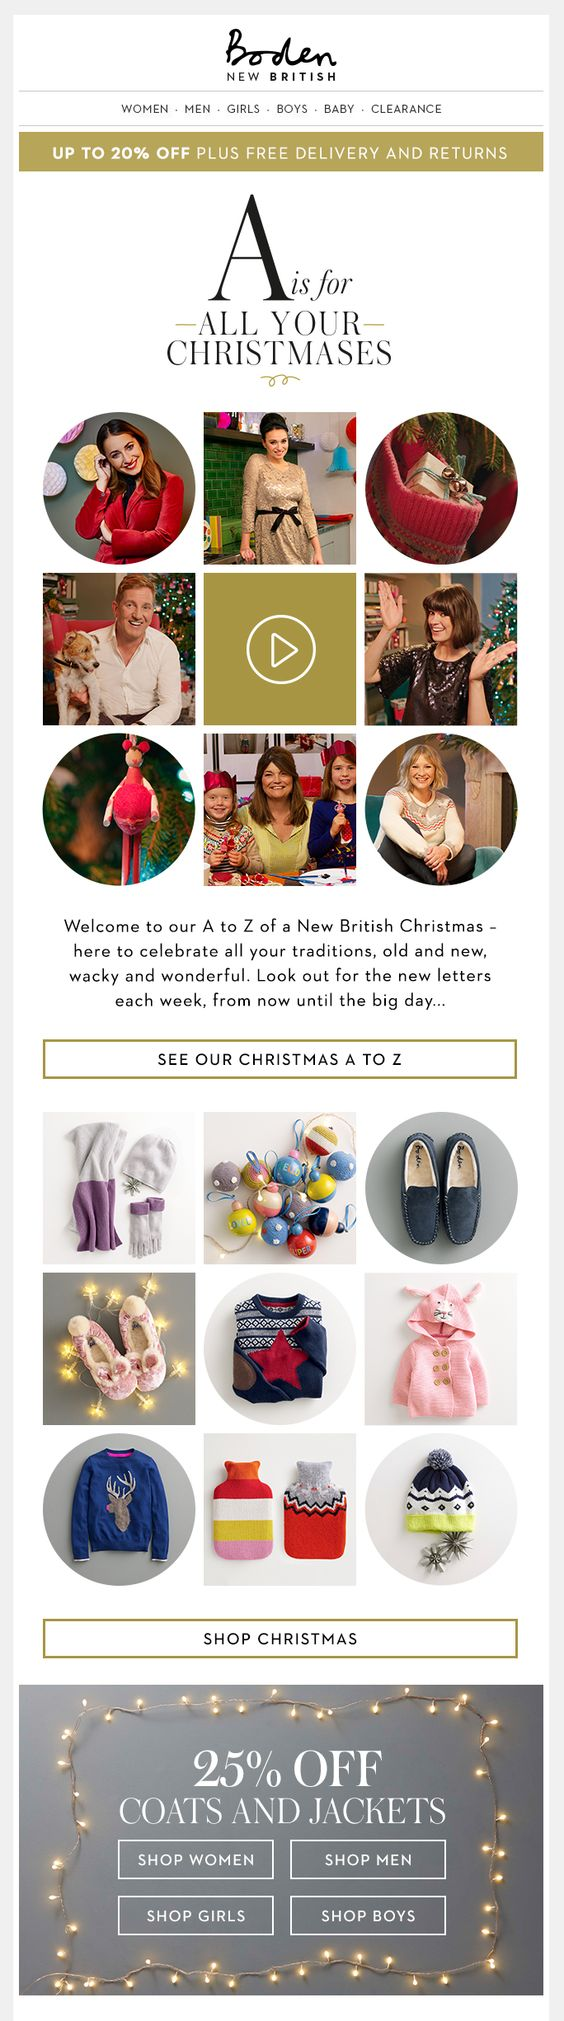 The famous british retailer boden emails you with a promise of a 20 christmas discount plus free delivery the offer is featured on top and displayed